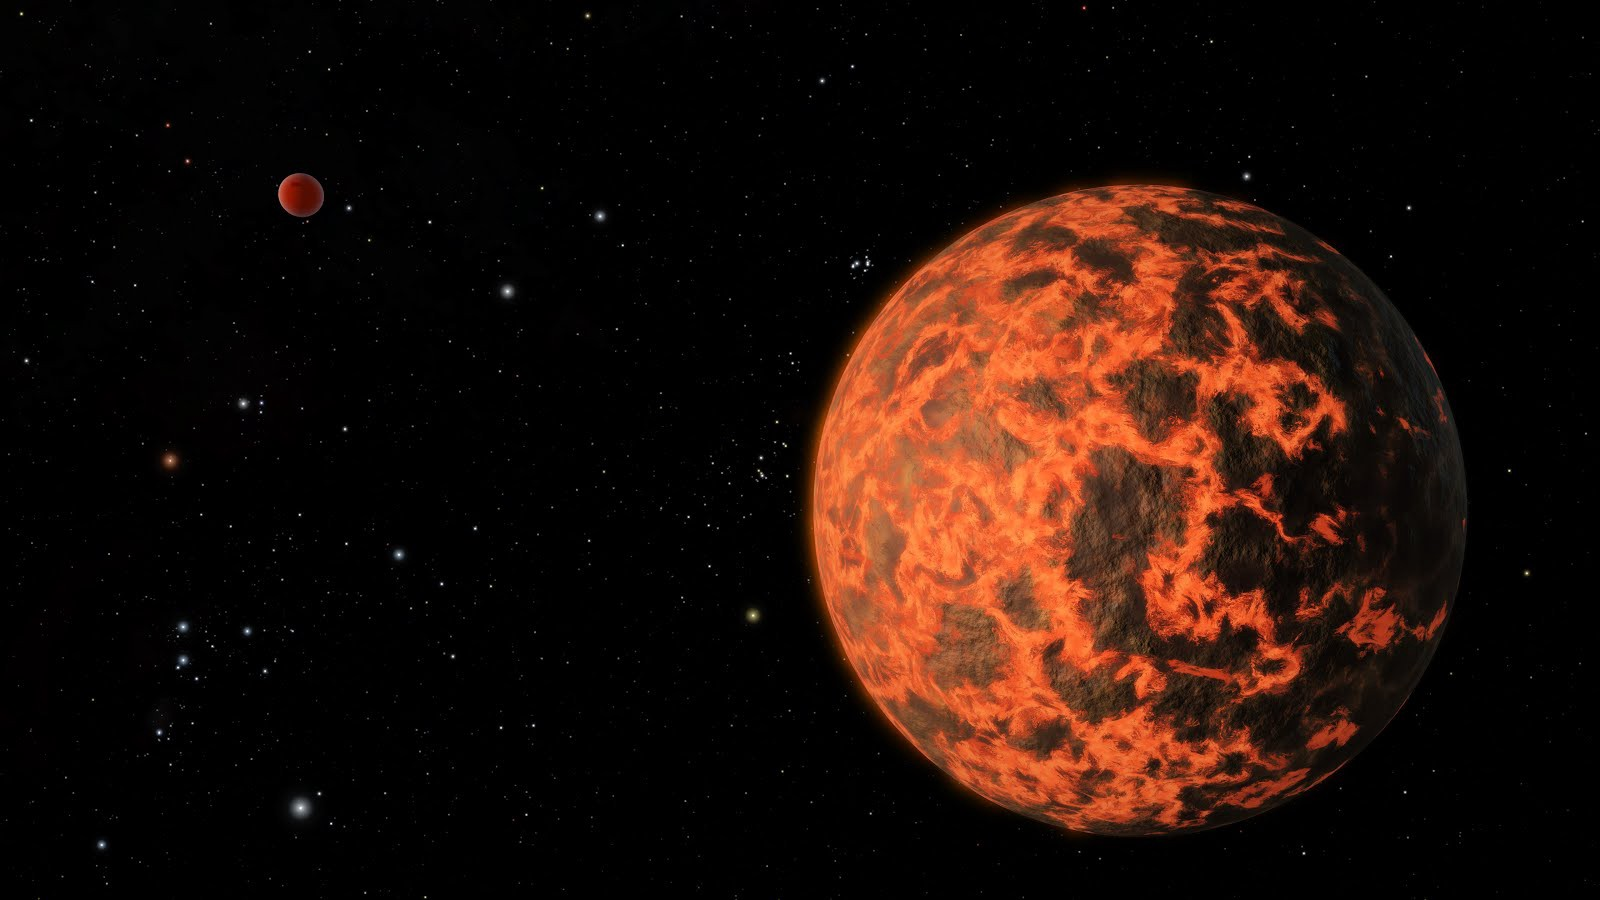 Mars and Venus could be a double planet